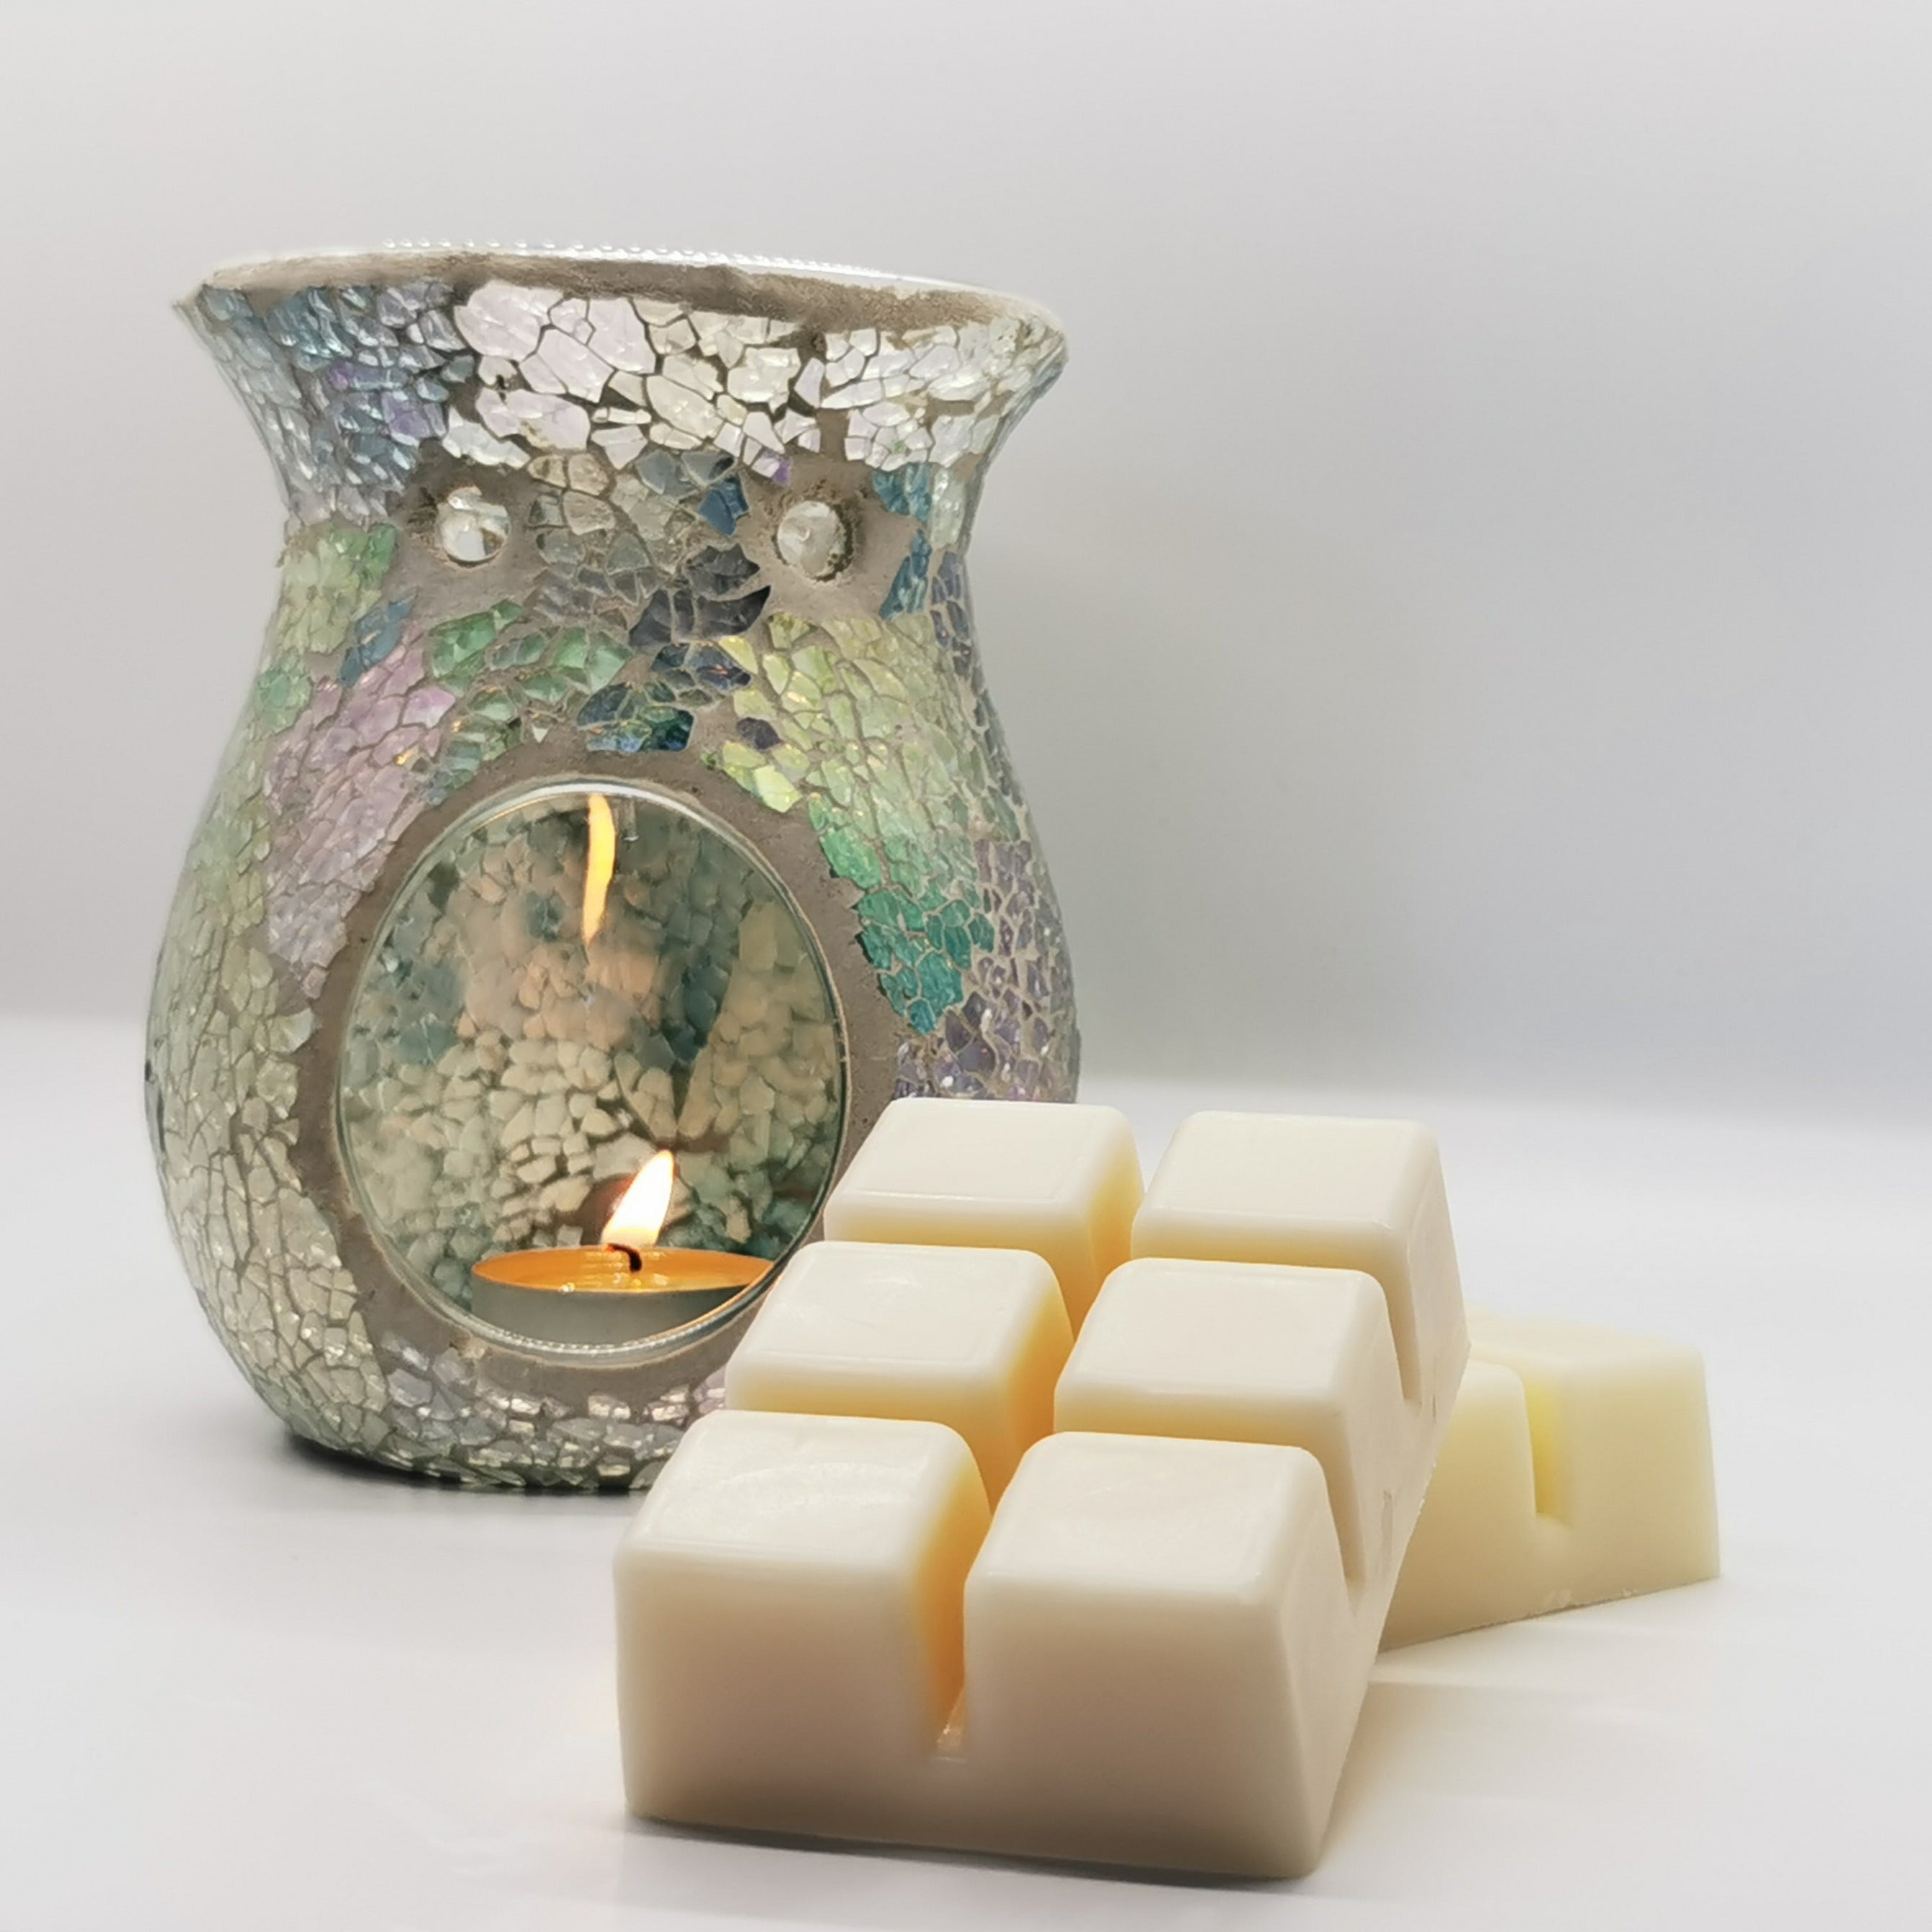 Soy Wax Melts - Amelia Daniels